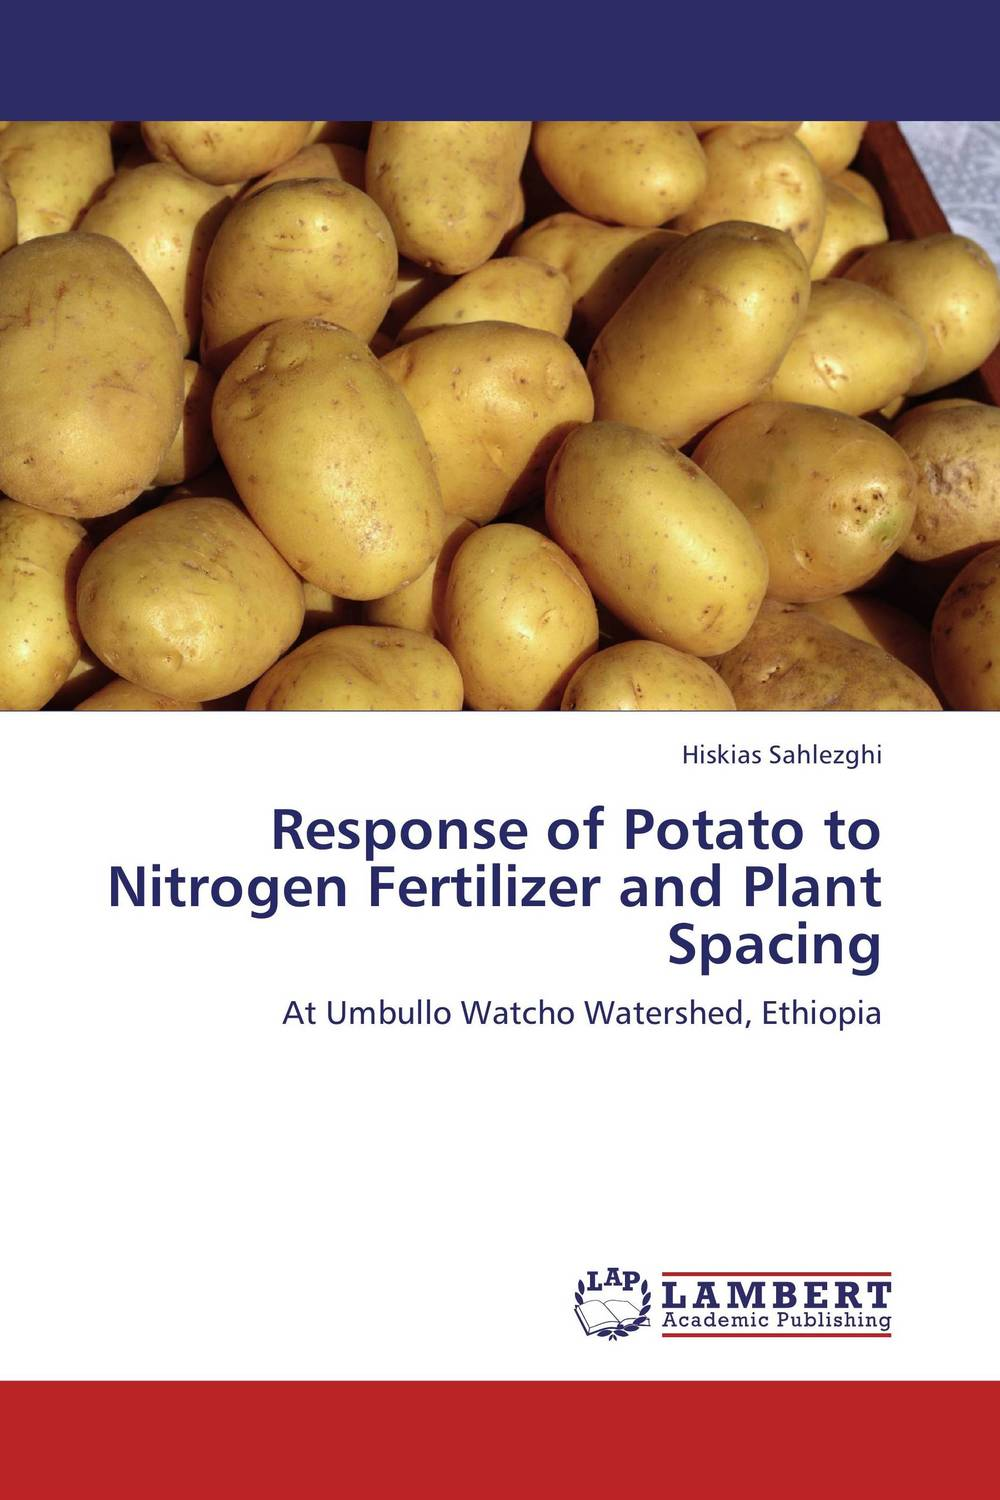 Response of Potato to Nitrogen Fertilizer and Plant Spacing evaluation of various methods of fertilizer application in potato